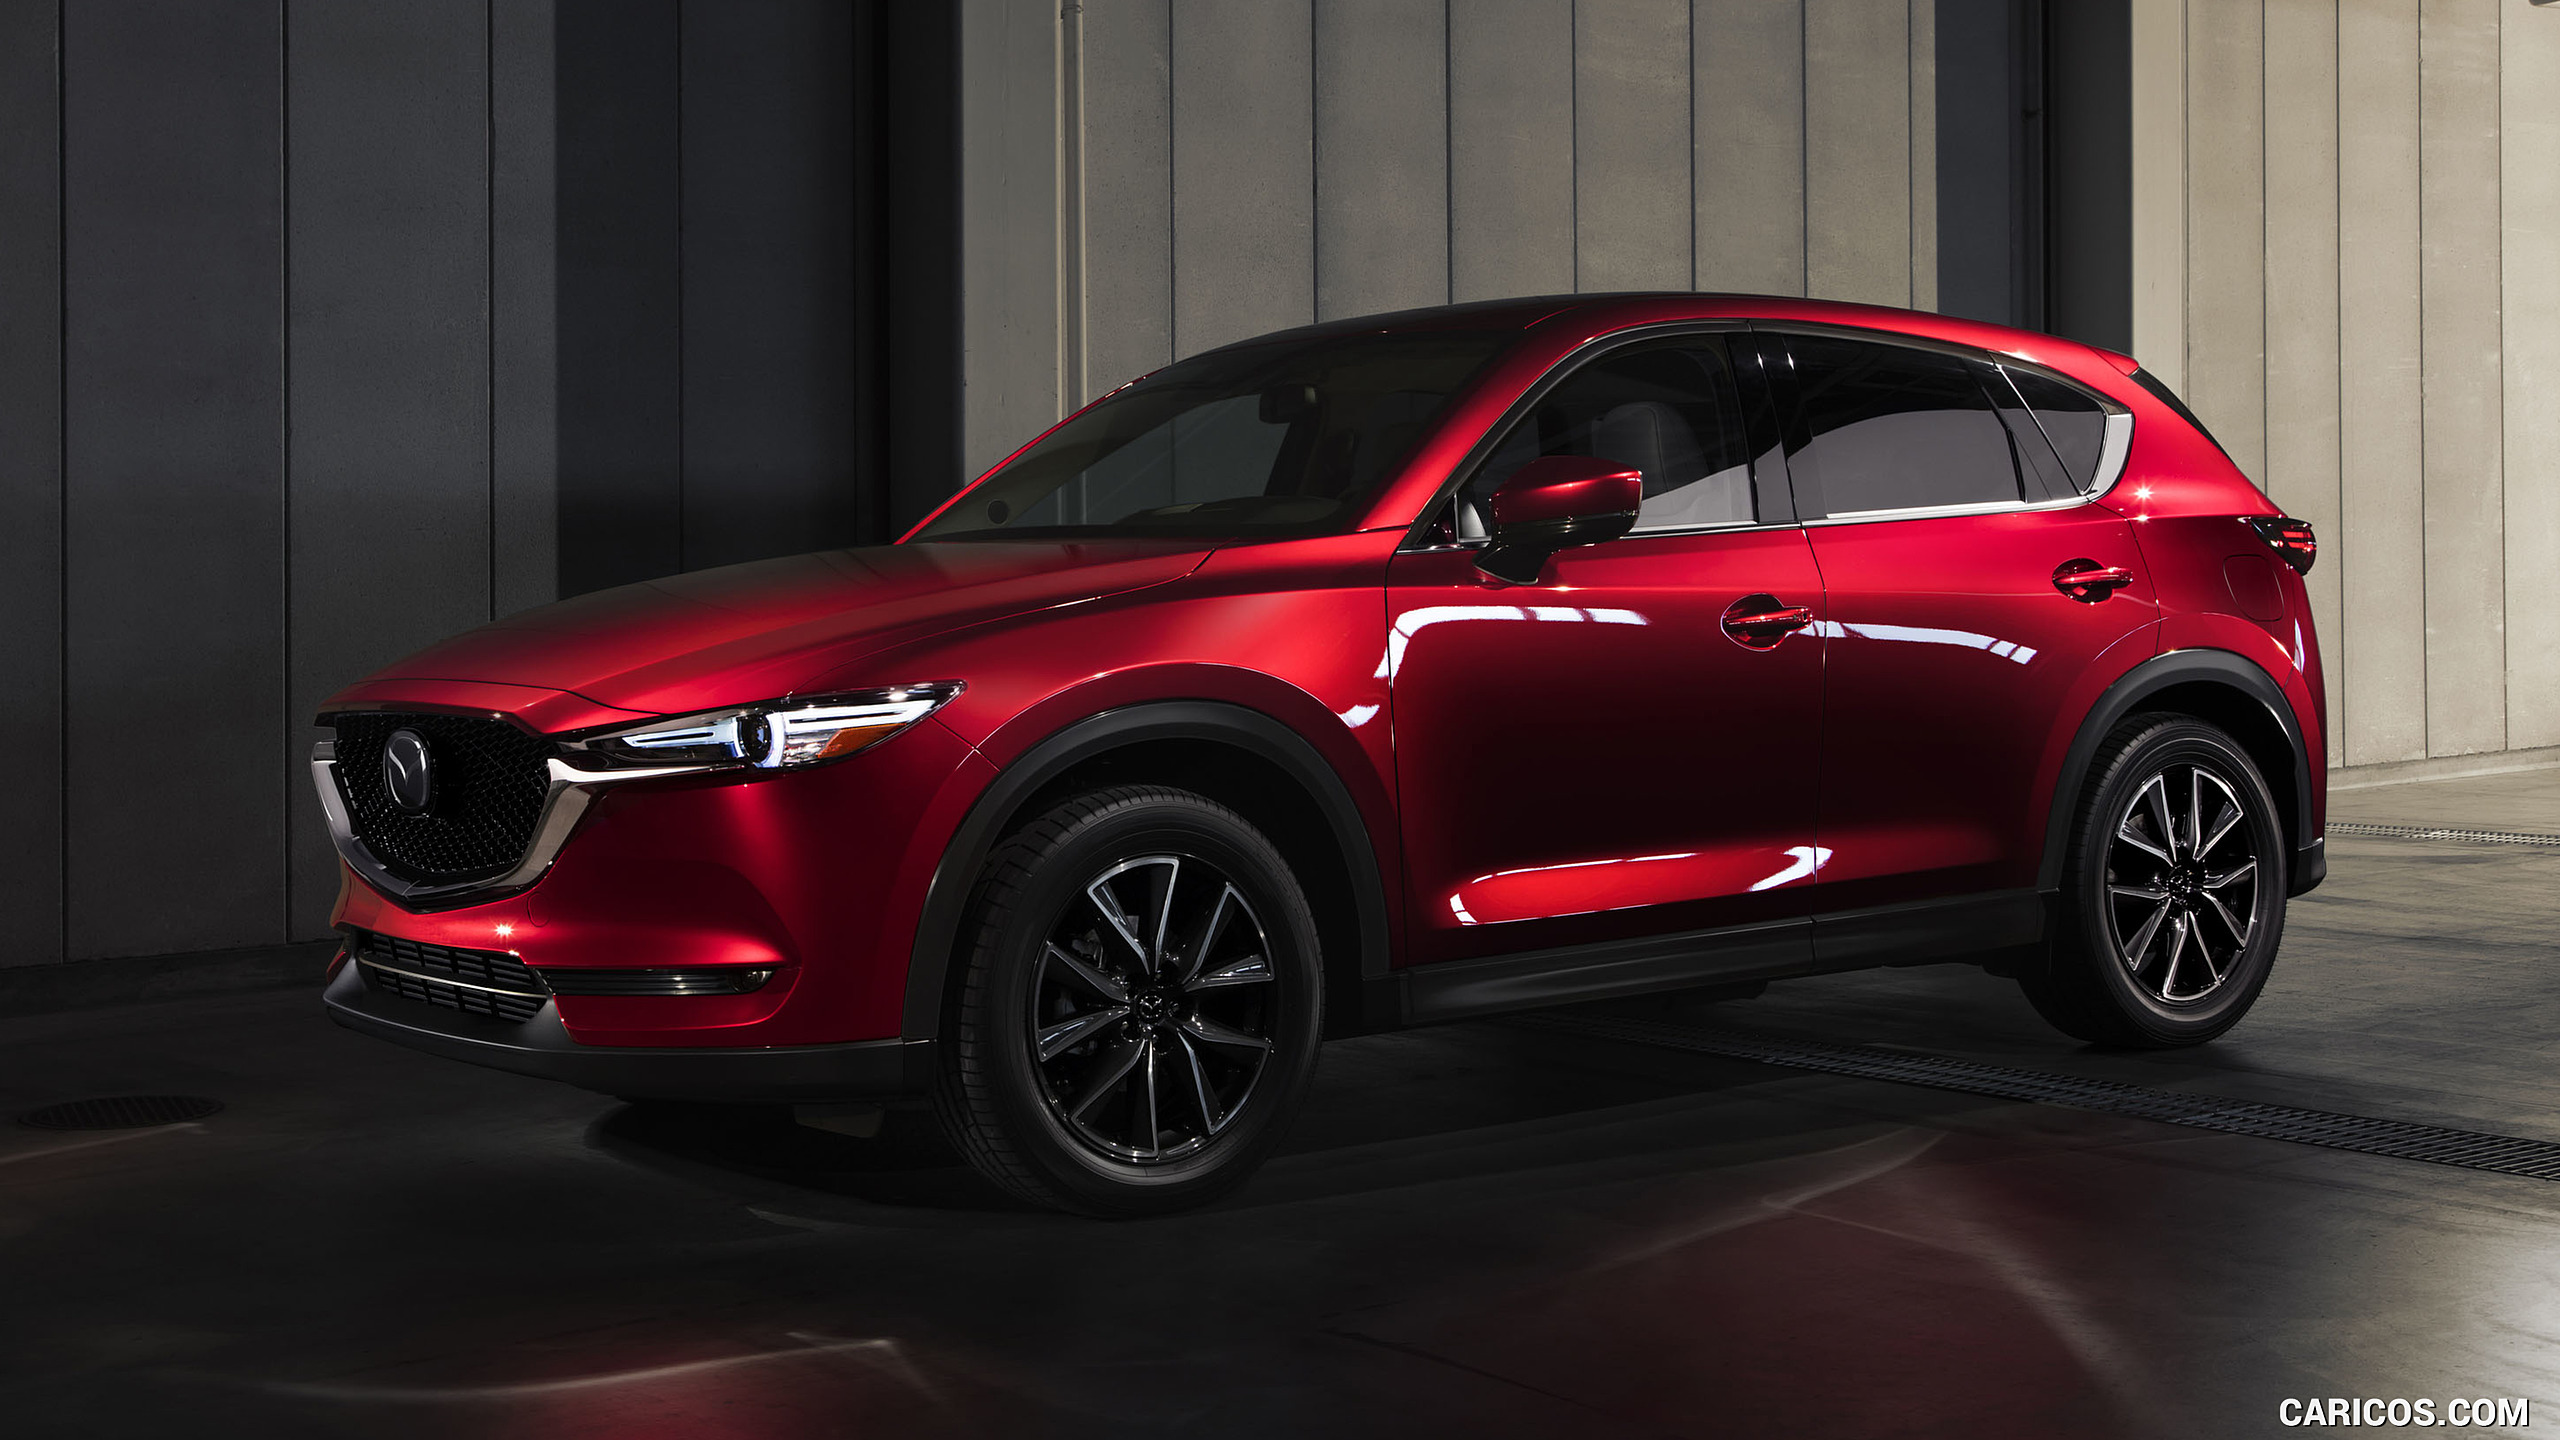 2560x1440 - Mazda CX-5 Wallpapers 10